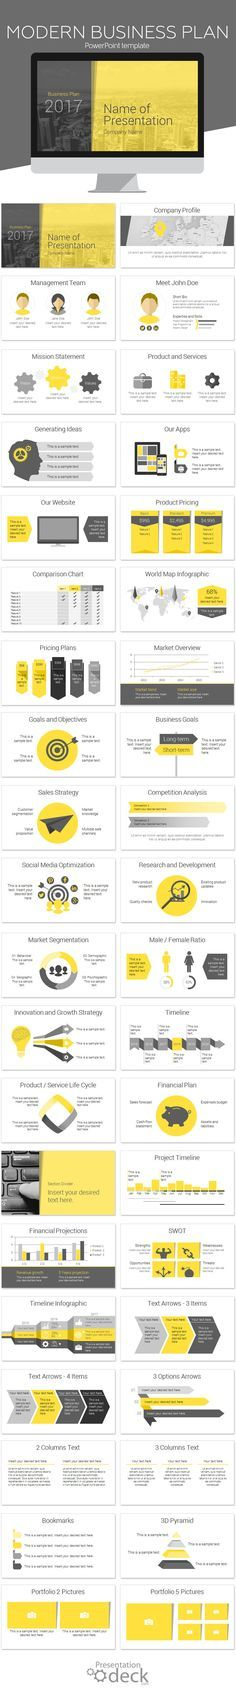 Modern business plan PowerPoint template with 40 pre-designed slides. This template is perfect for annual reports, business plan, financial statements, etc. Your audience will appreciate the consistent look and feel, a key factor to successful presentations!